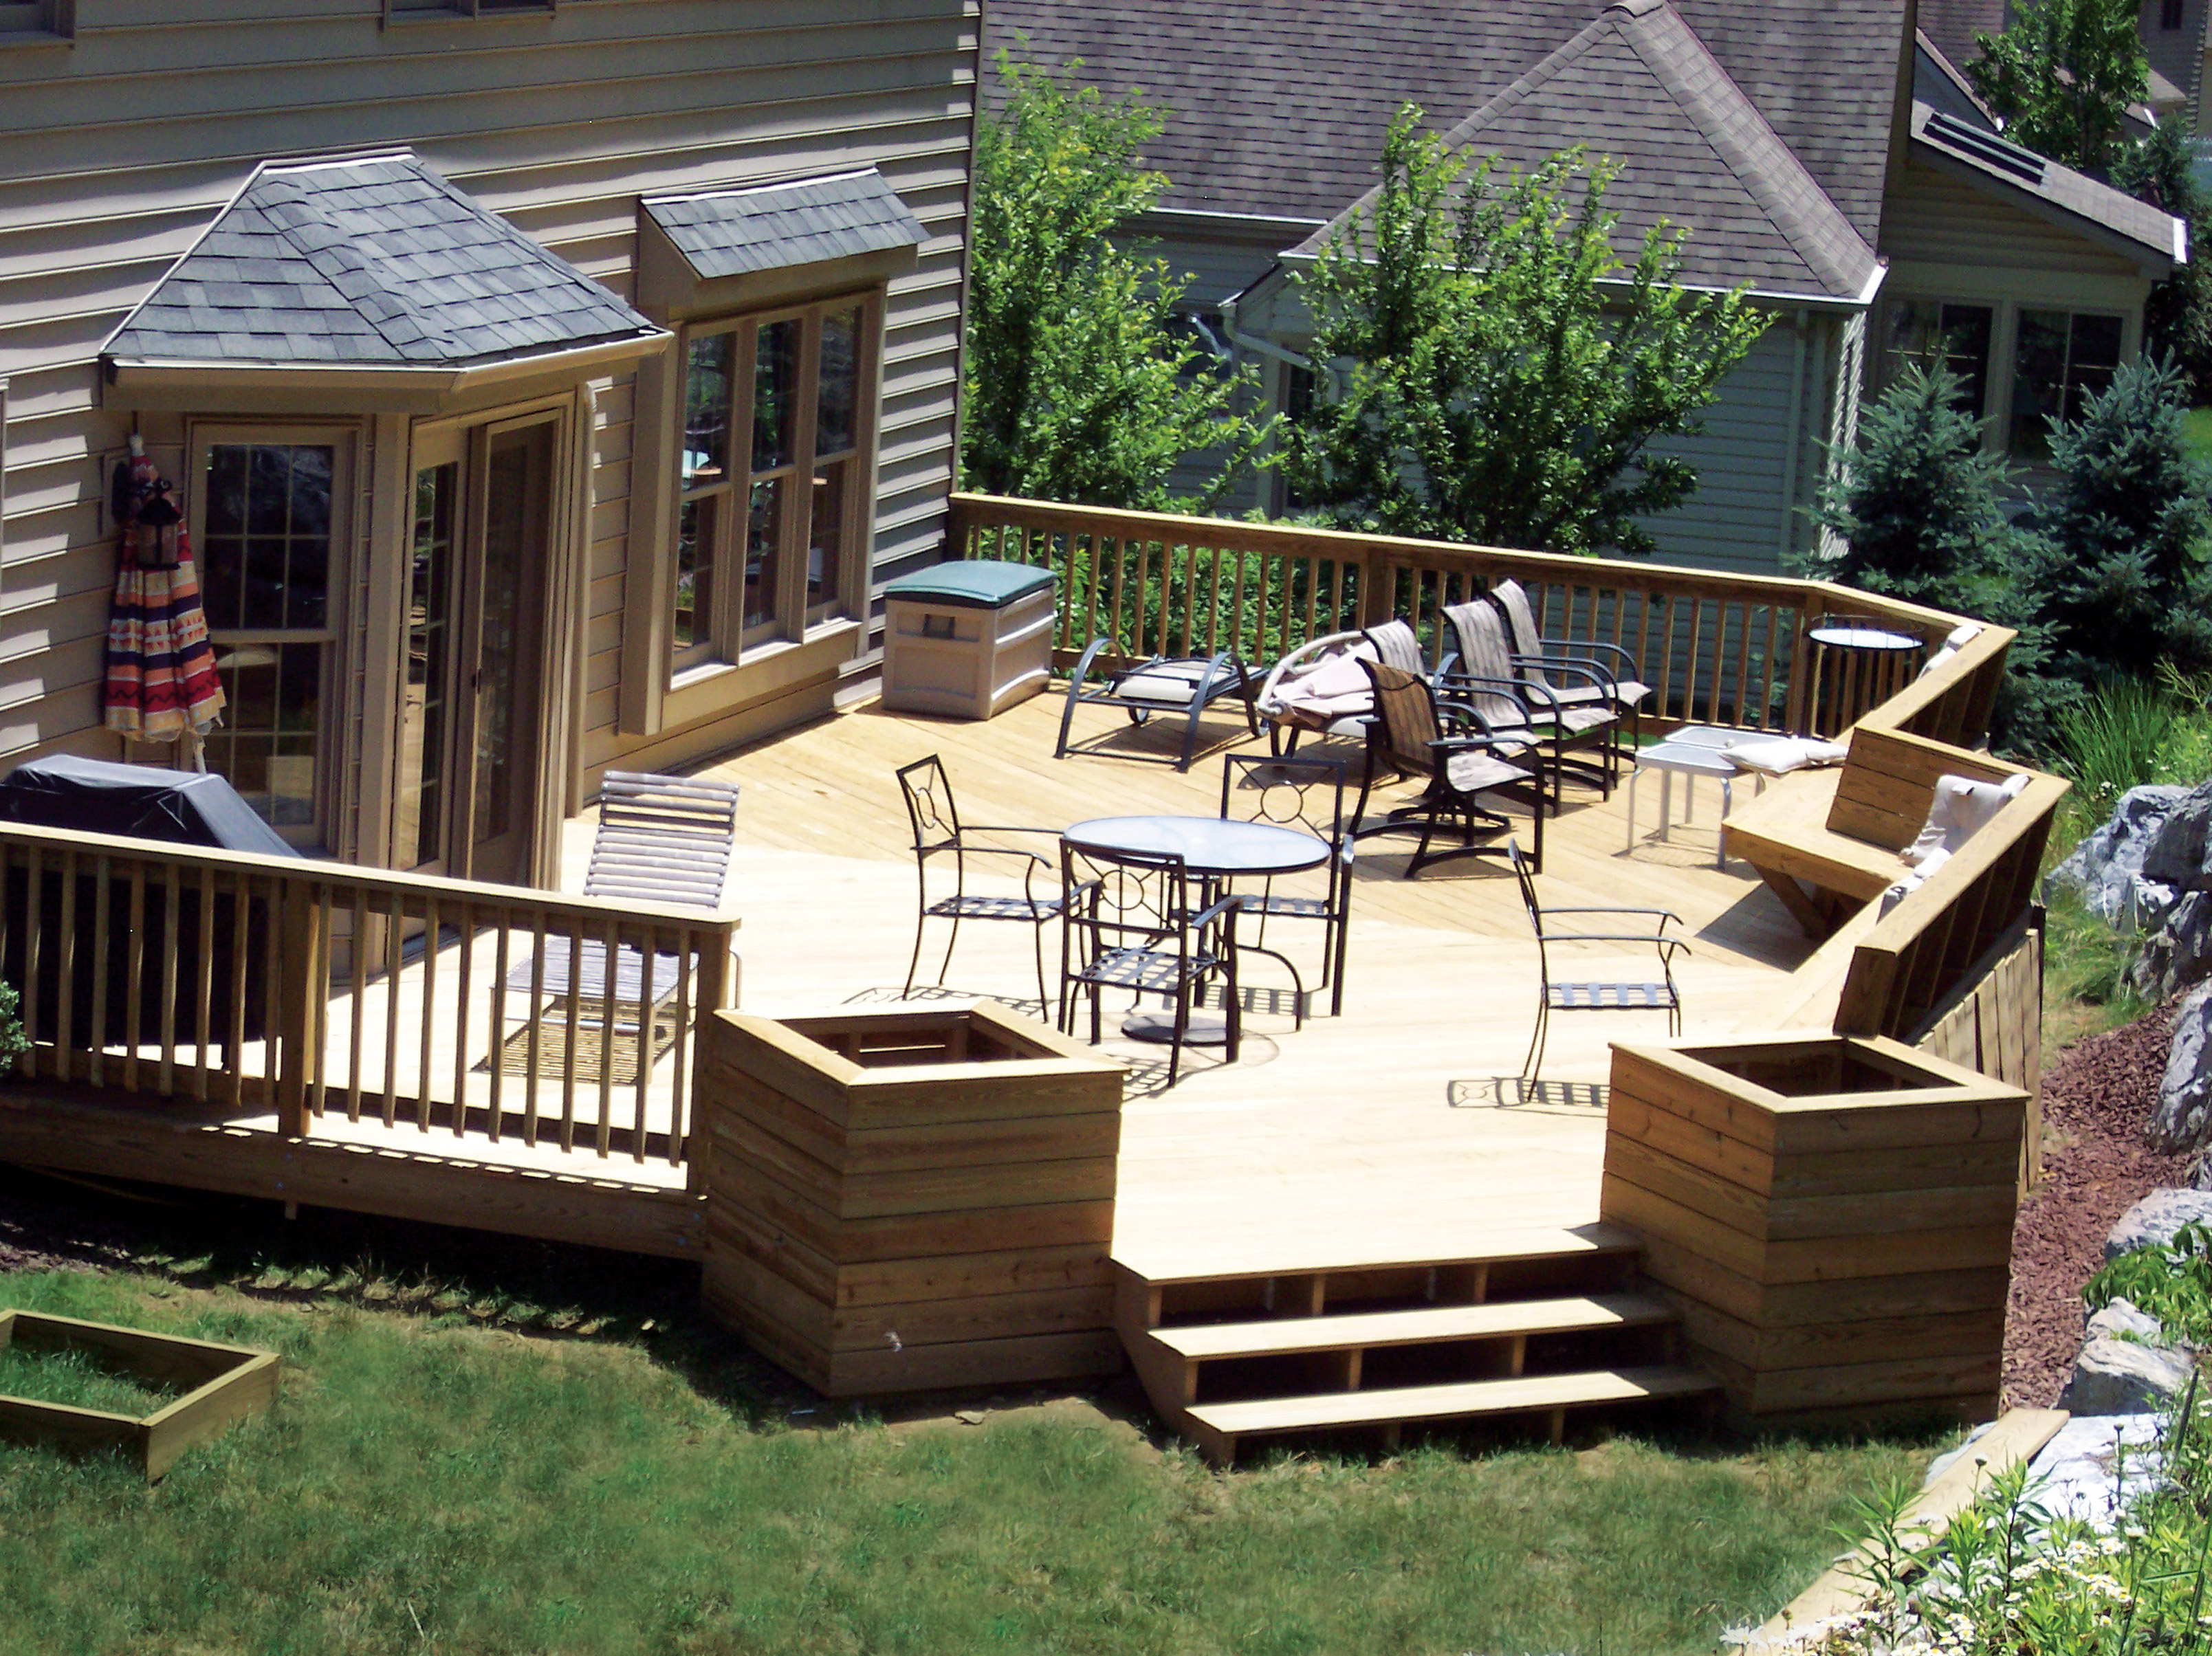 How To Design A Deck For The Backyard deck design ideas hgtv How To Design A Deck For The Backyard Image Detail For Deck Ideas About Patio Designs